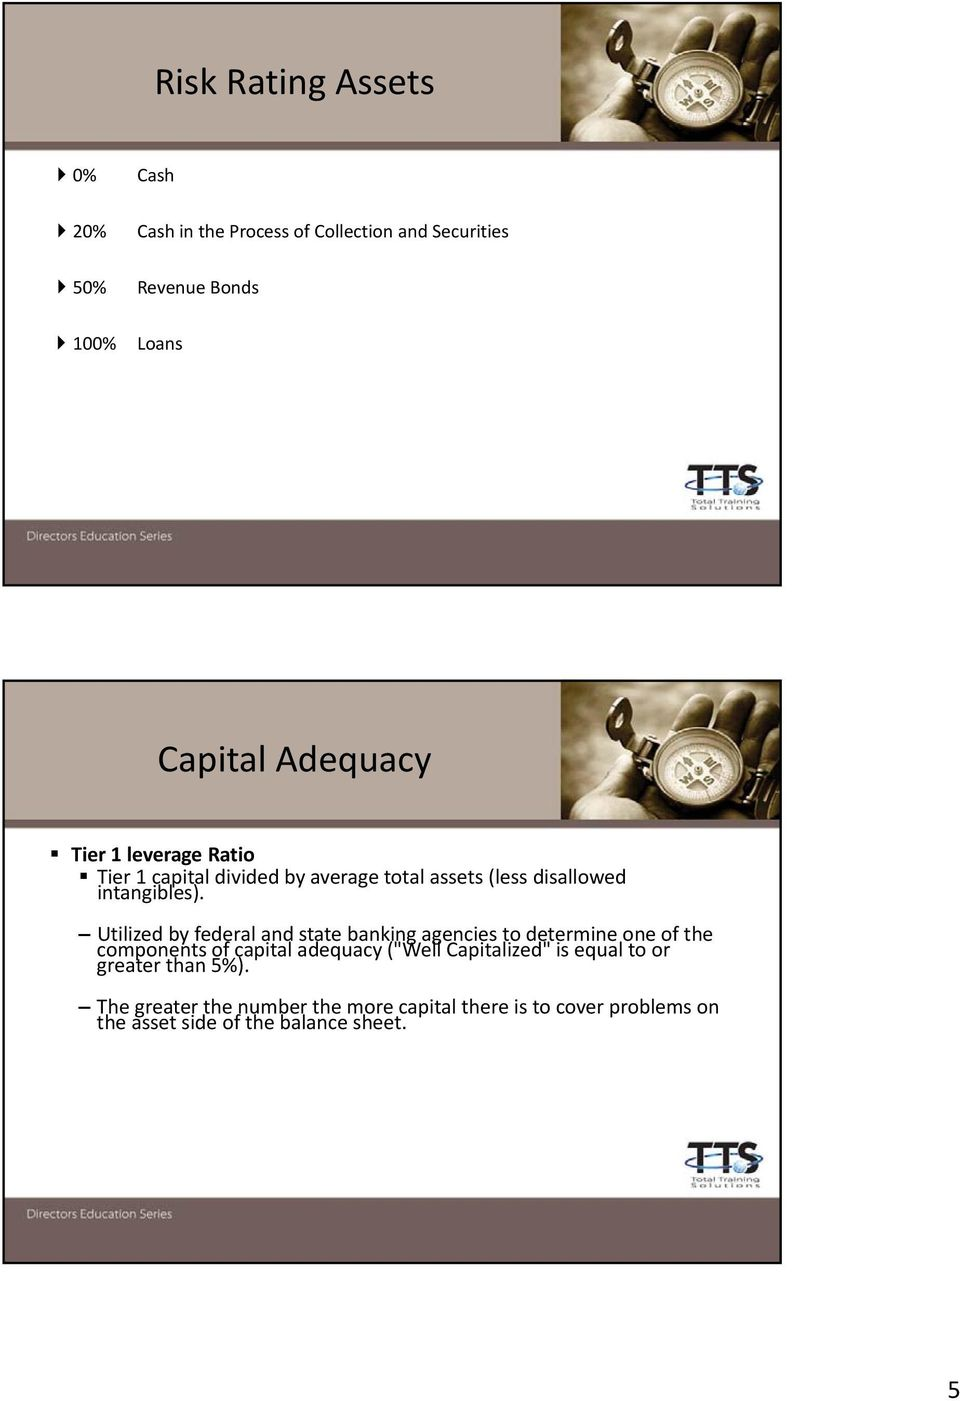 "Utilized by federal and state banking agencies to determine one of the components of capital adequacy (""Well Capitalized"""